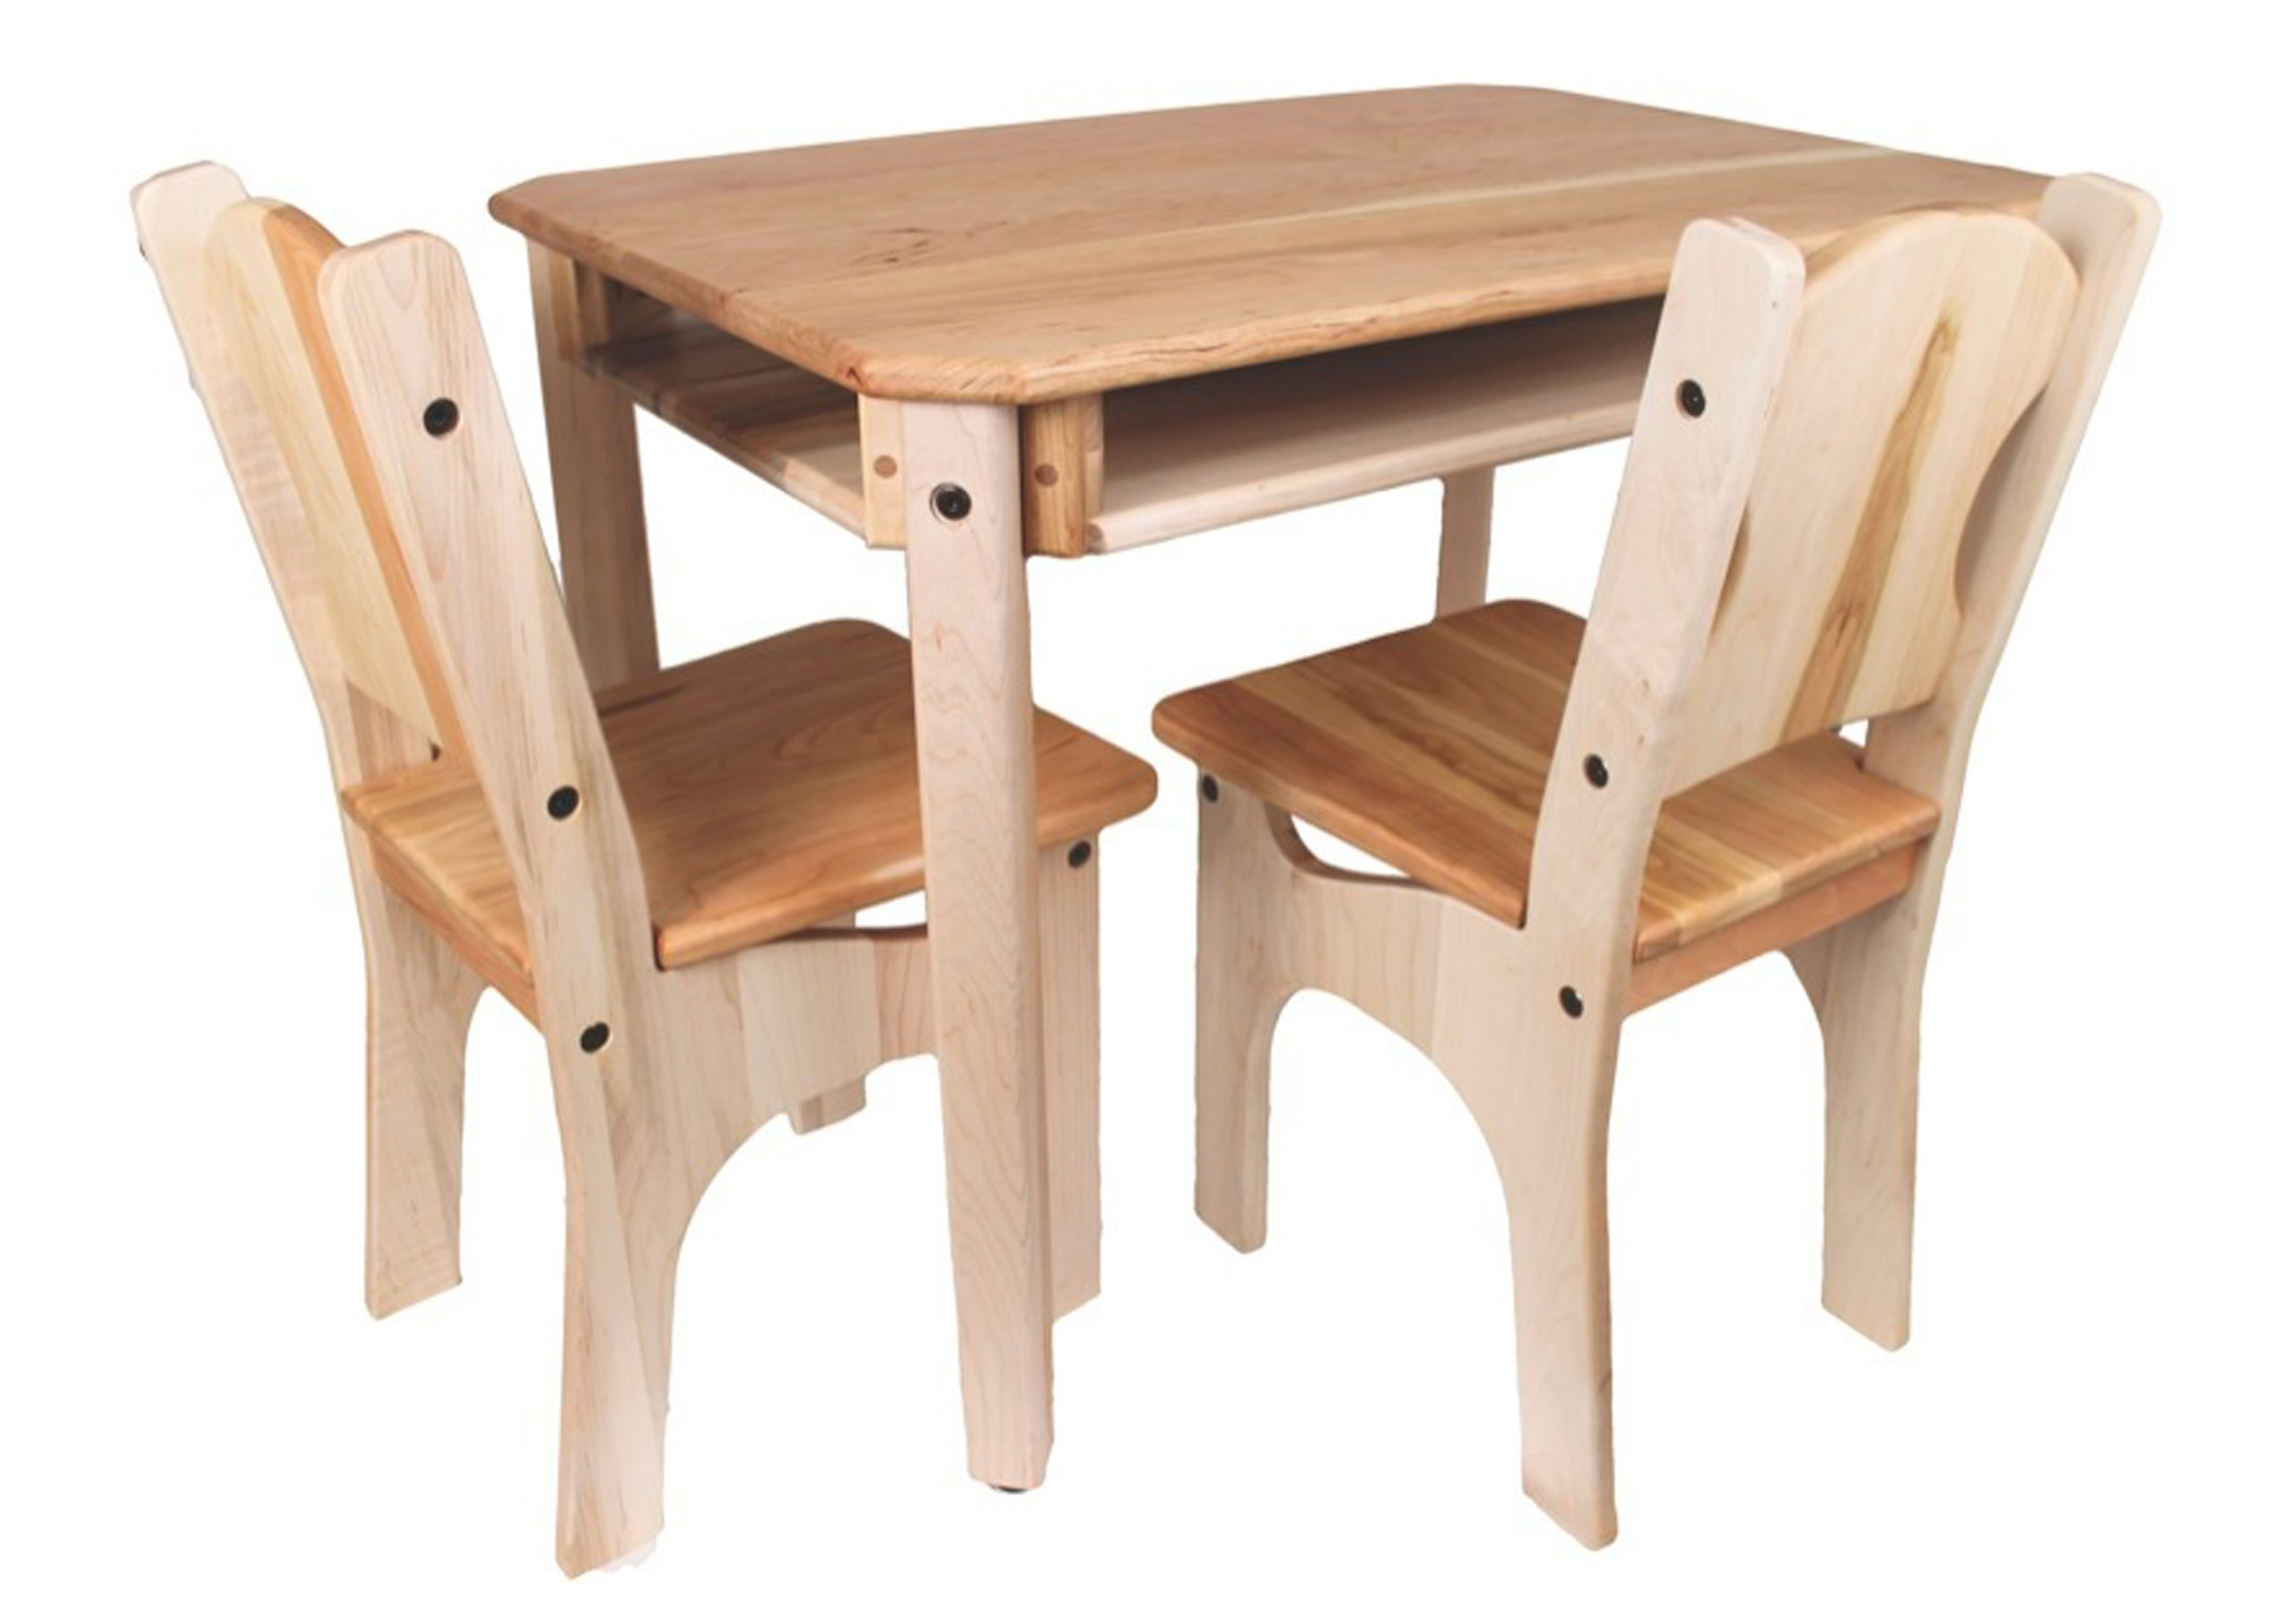 Camden Rose Child's Cherry & Maple Wood Table and 2 Chairs, USA Made